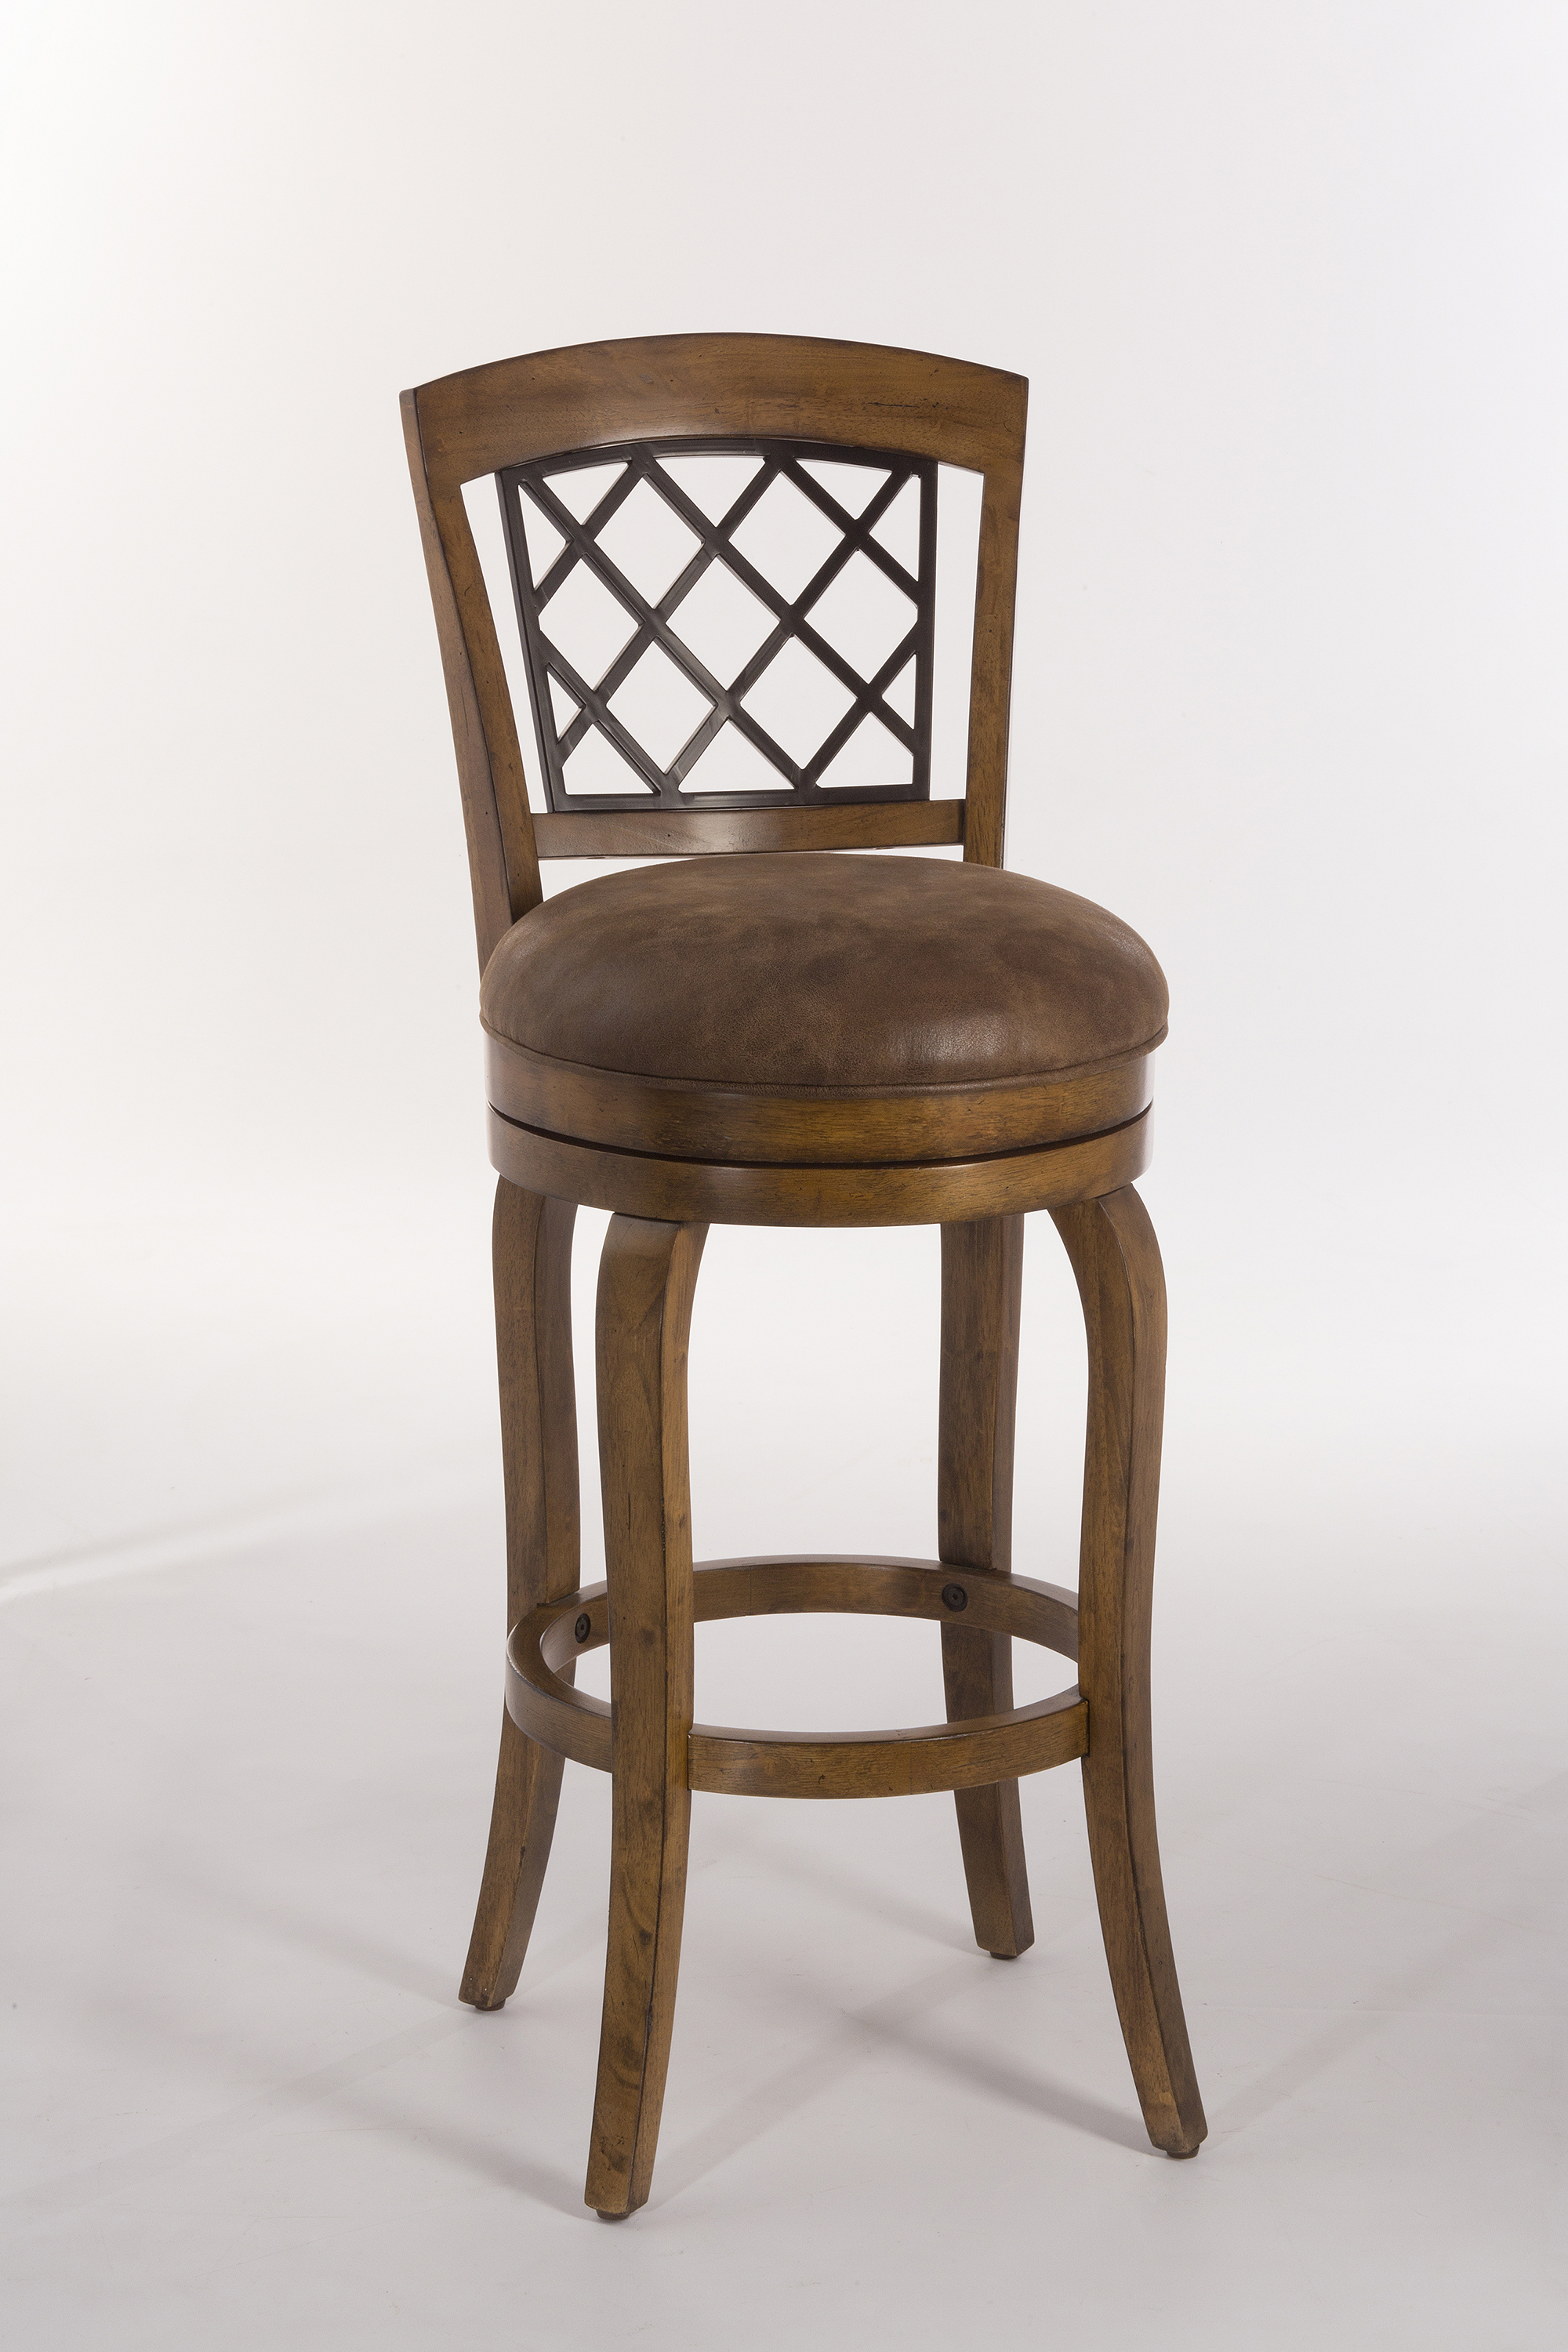 Hillsdale Wood Stools Swivel Counter Height Stool With